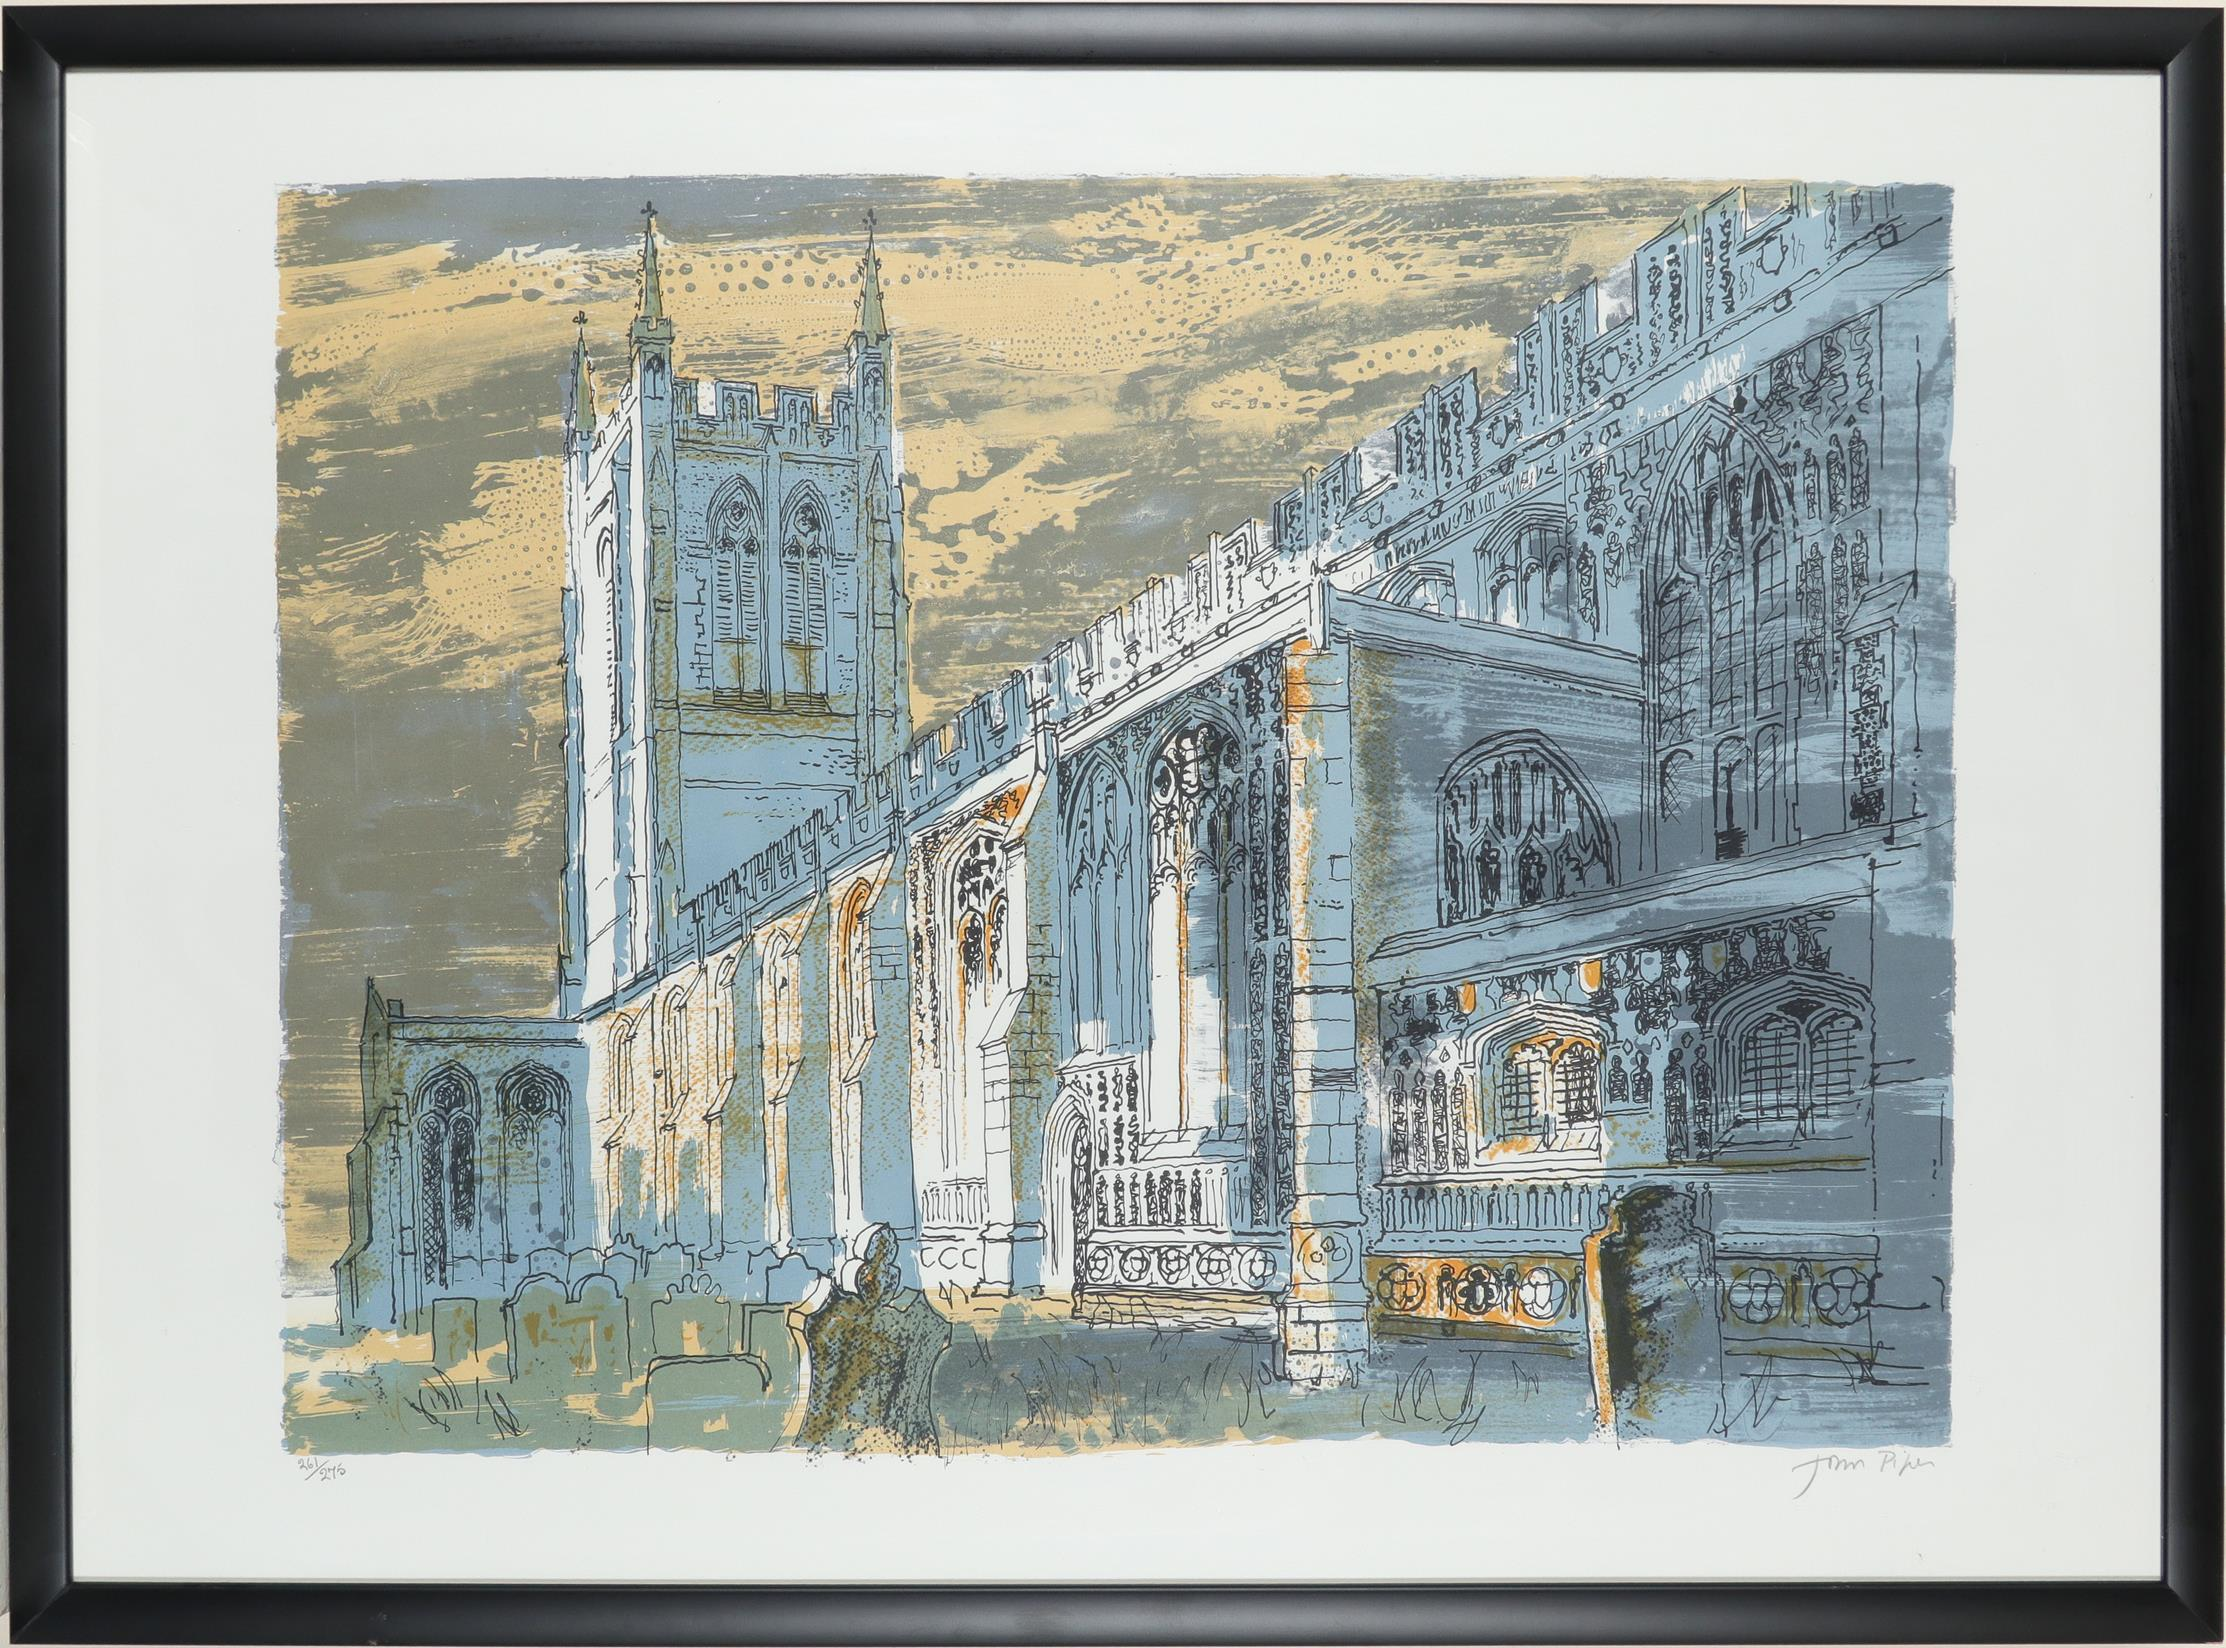 ‡John Piper CH (1903-1992) Long Melford Church (Levinson 336) Signed and numbered John Piper 261/275 - Image 2 of 3